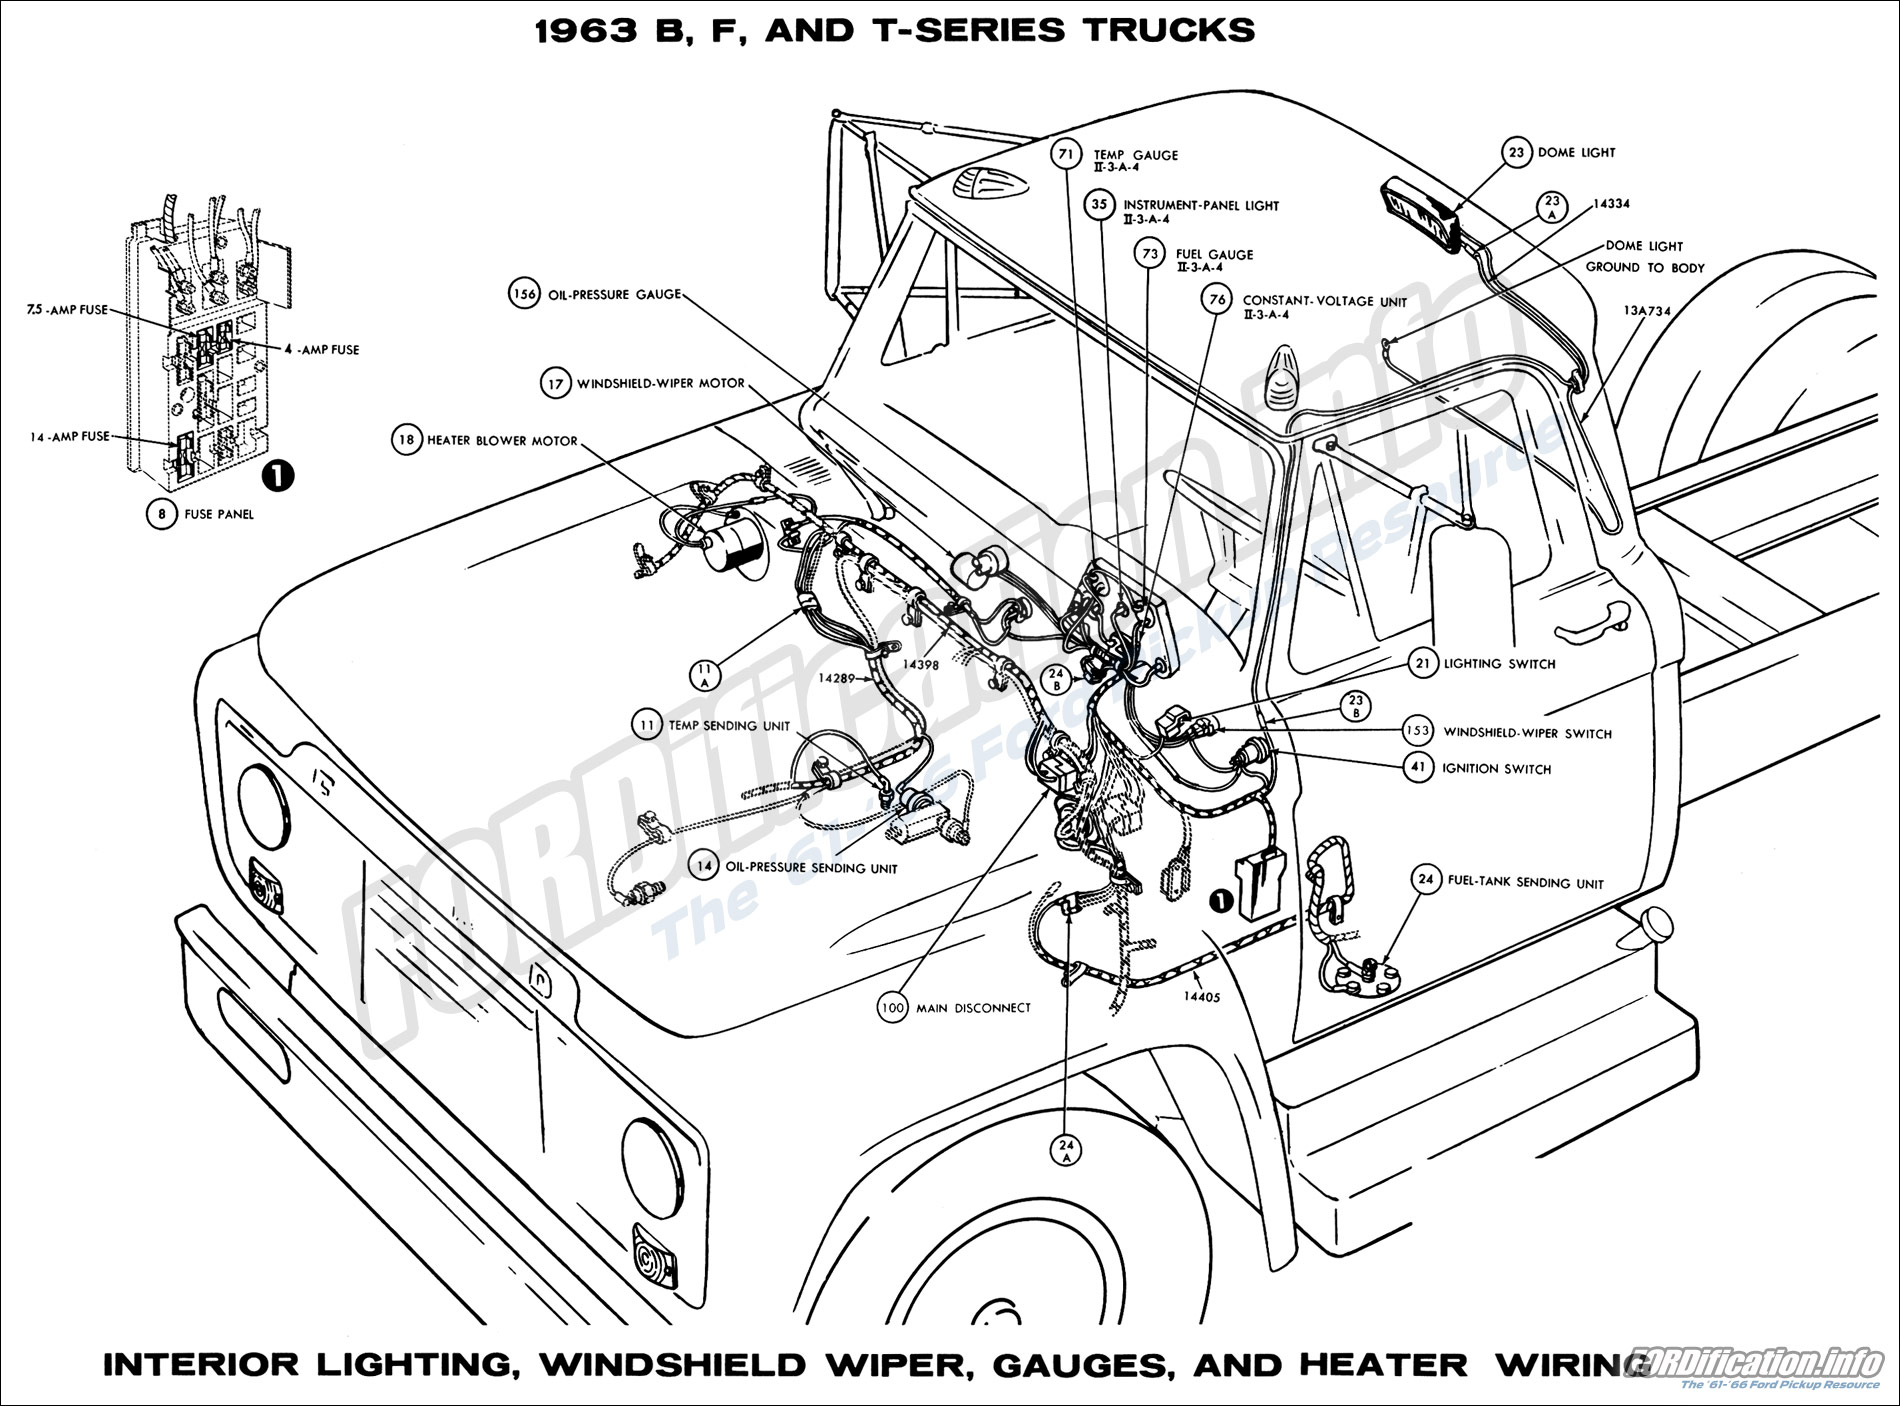 1963 ford truck wiring diagrams - fordification.info - the ... 1963 ford falcon wiring diagram 1963 ford f100 wiring